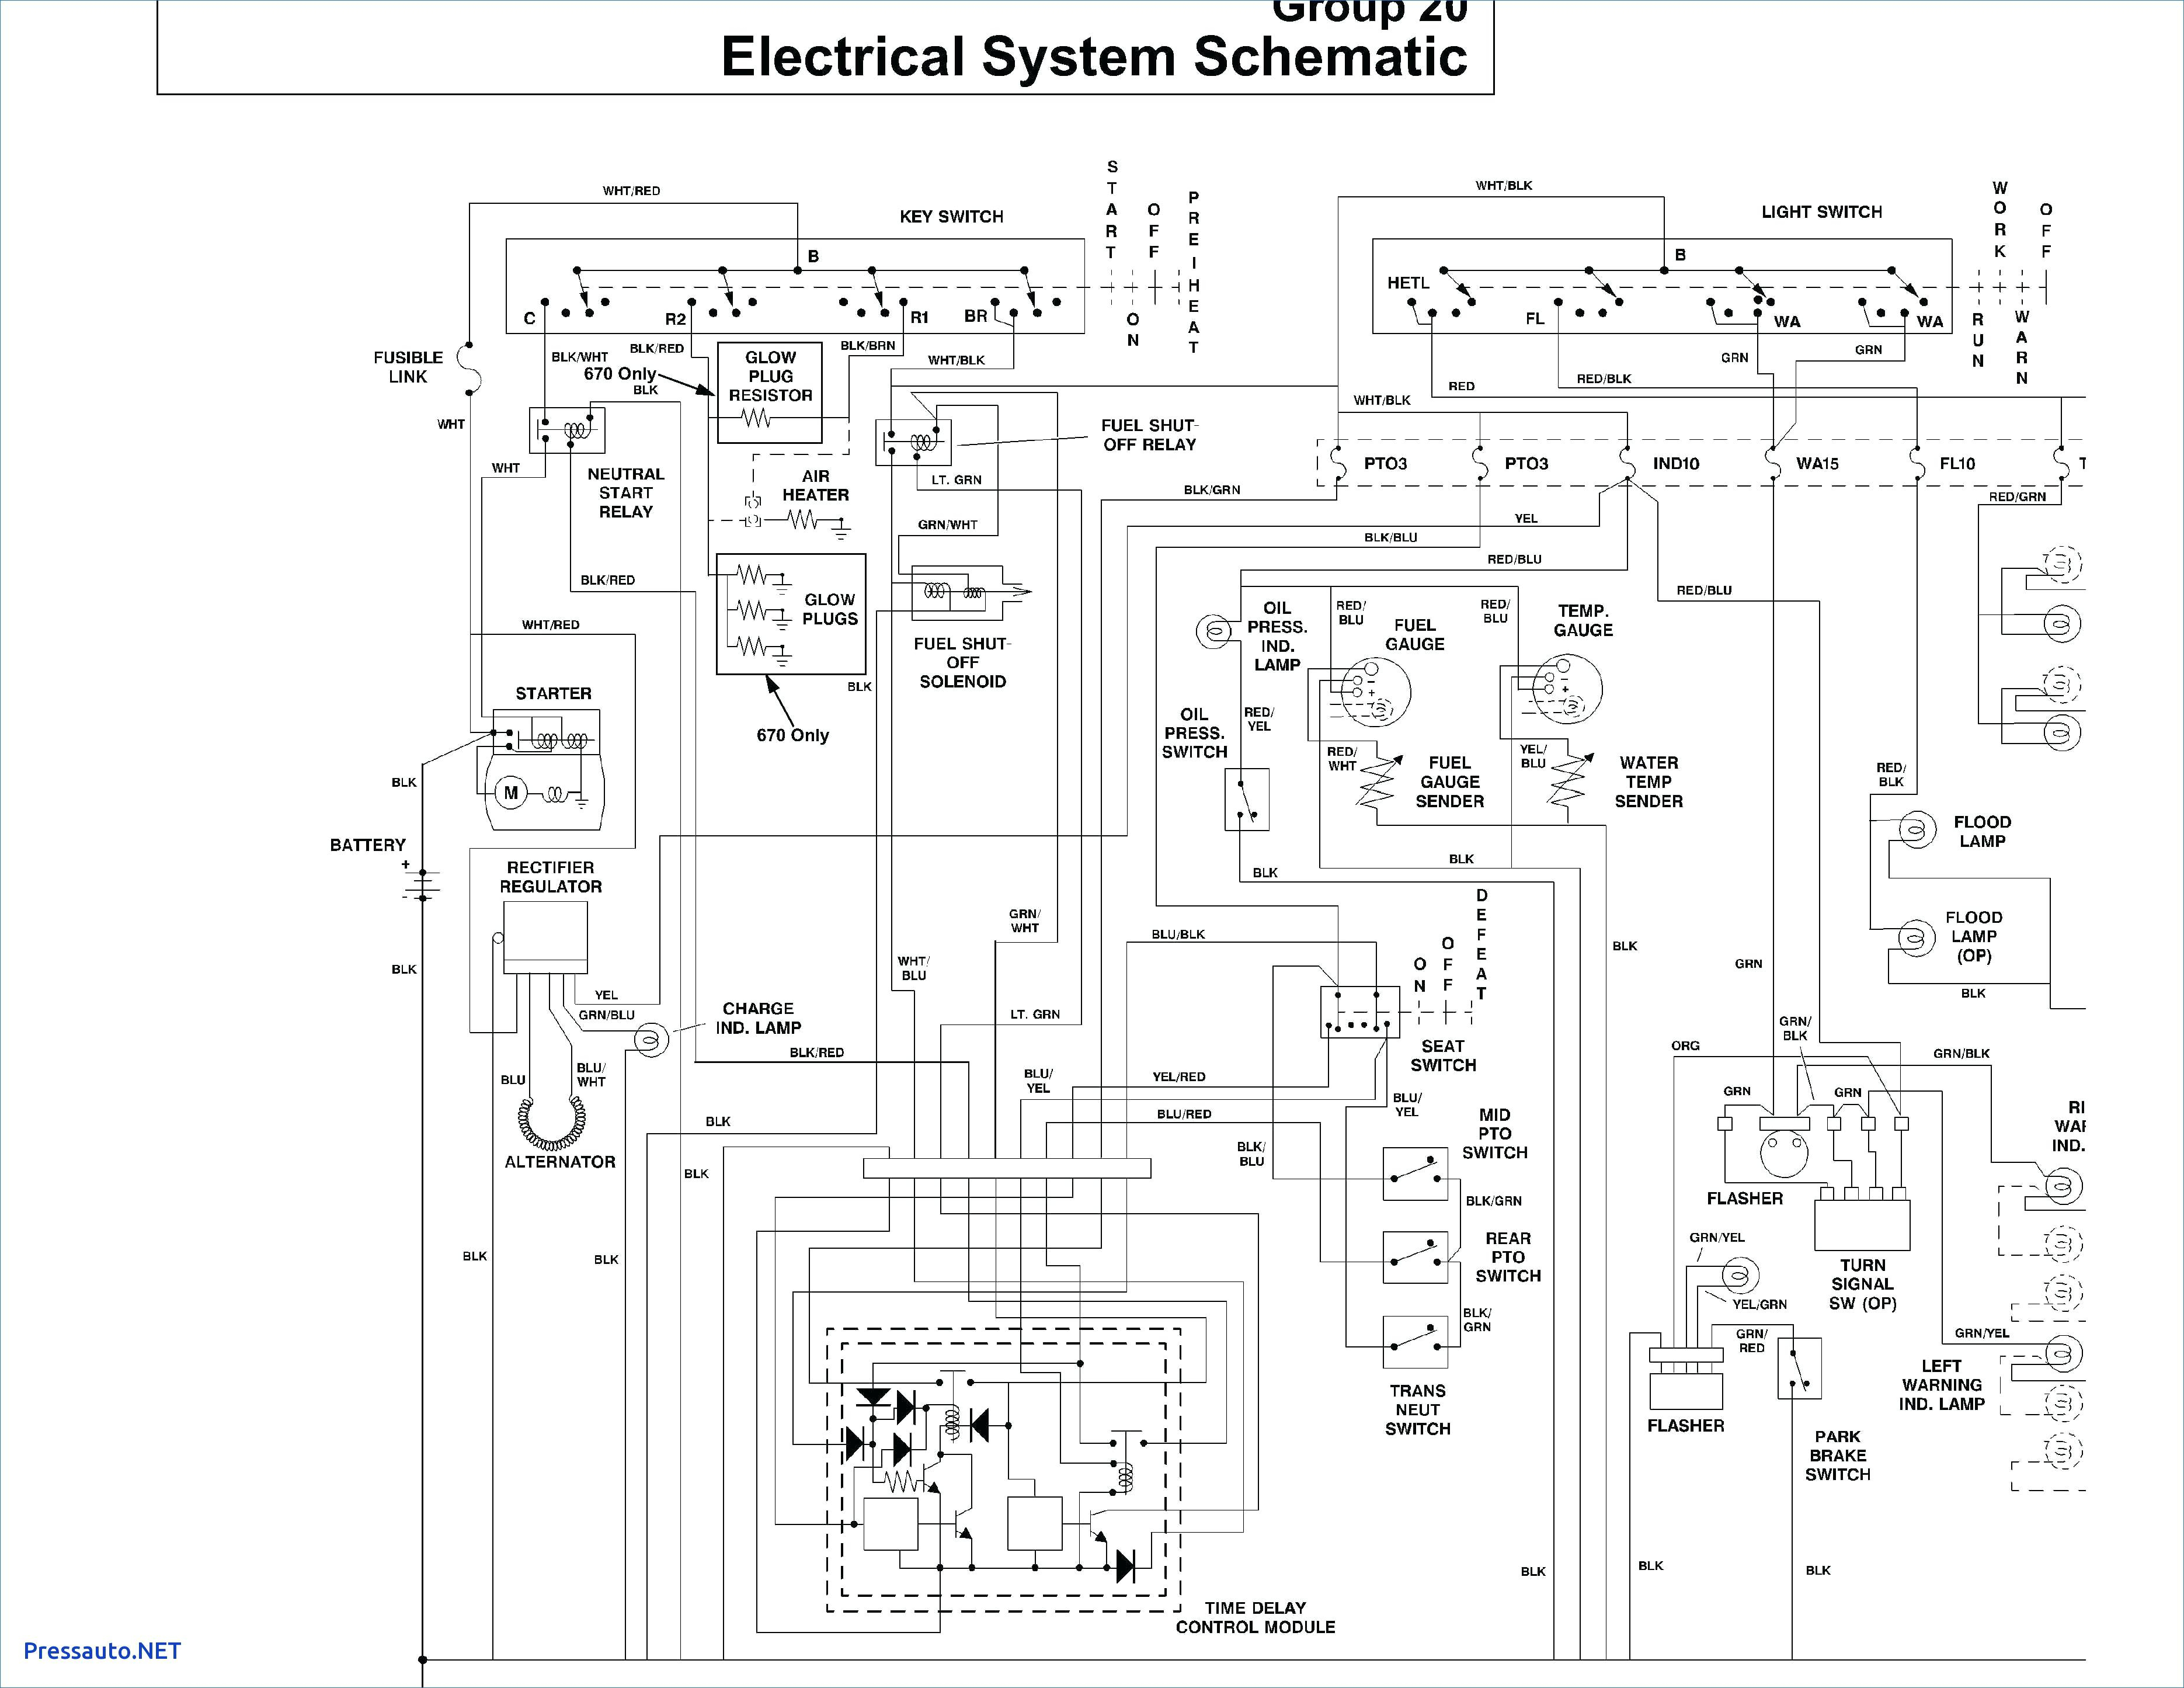 1938 Ford 8N Wiring Diagram | Wiring Library - Ford 8N 12 Volt Conversion Wiring Diagram